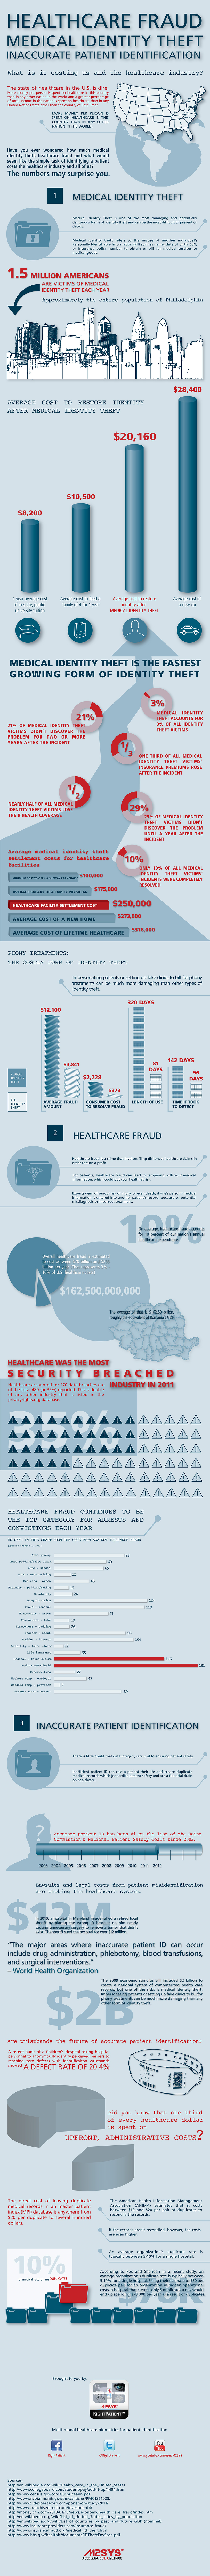 How Theft, Fraud, and Inaccurate Patient ID Impacts Our Healthcare